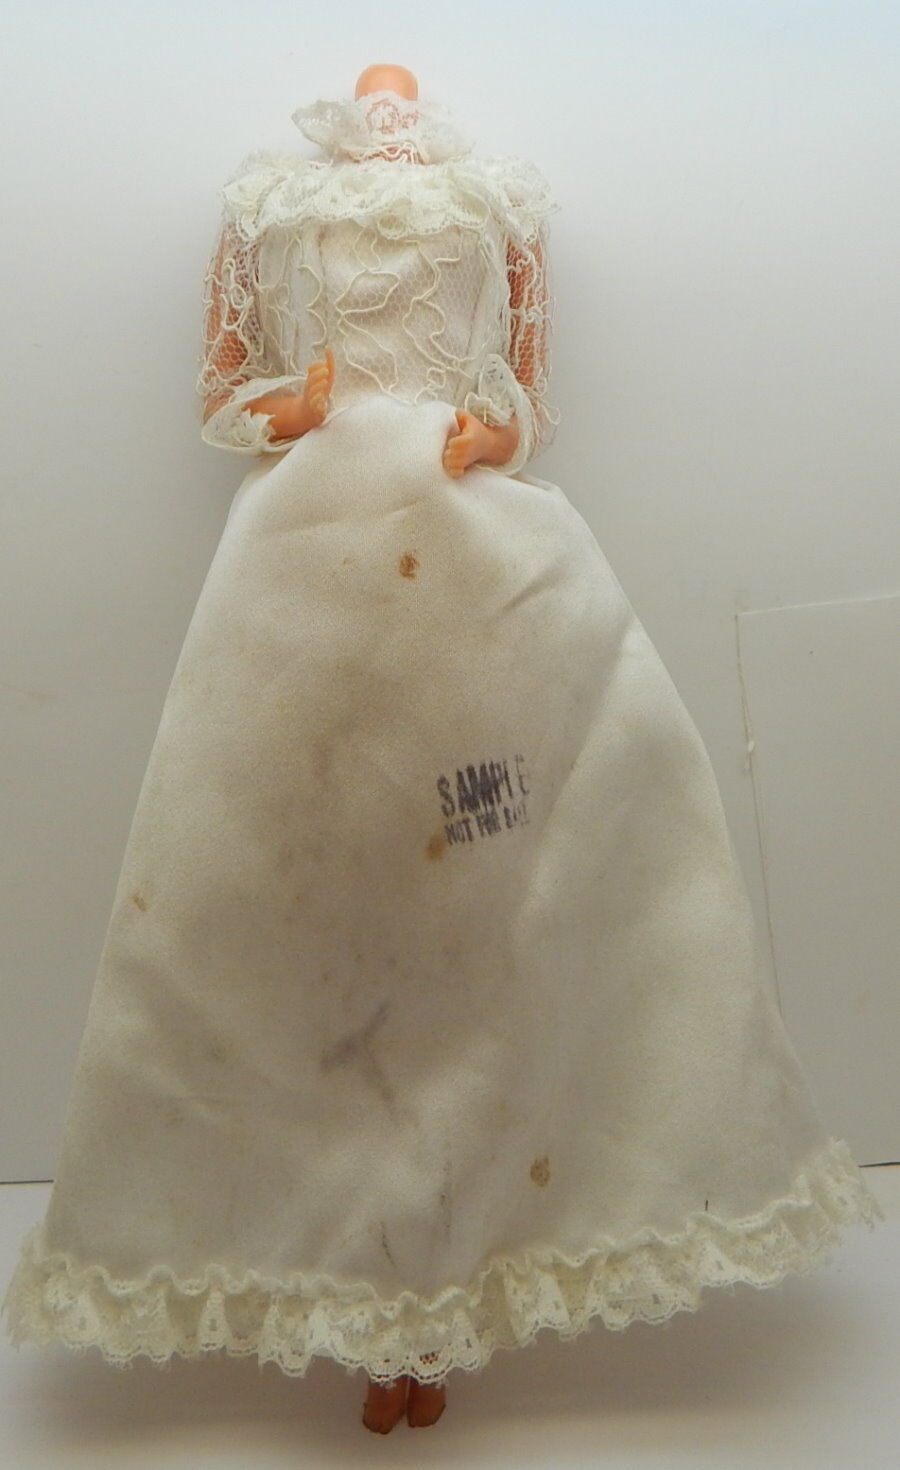 Mattel Barbie Factory Sample Wedding Dress and Pre Production Doll R18128